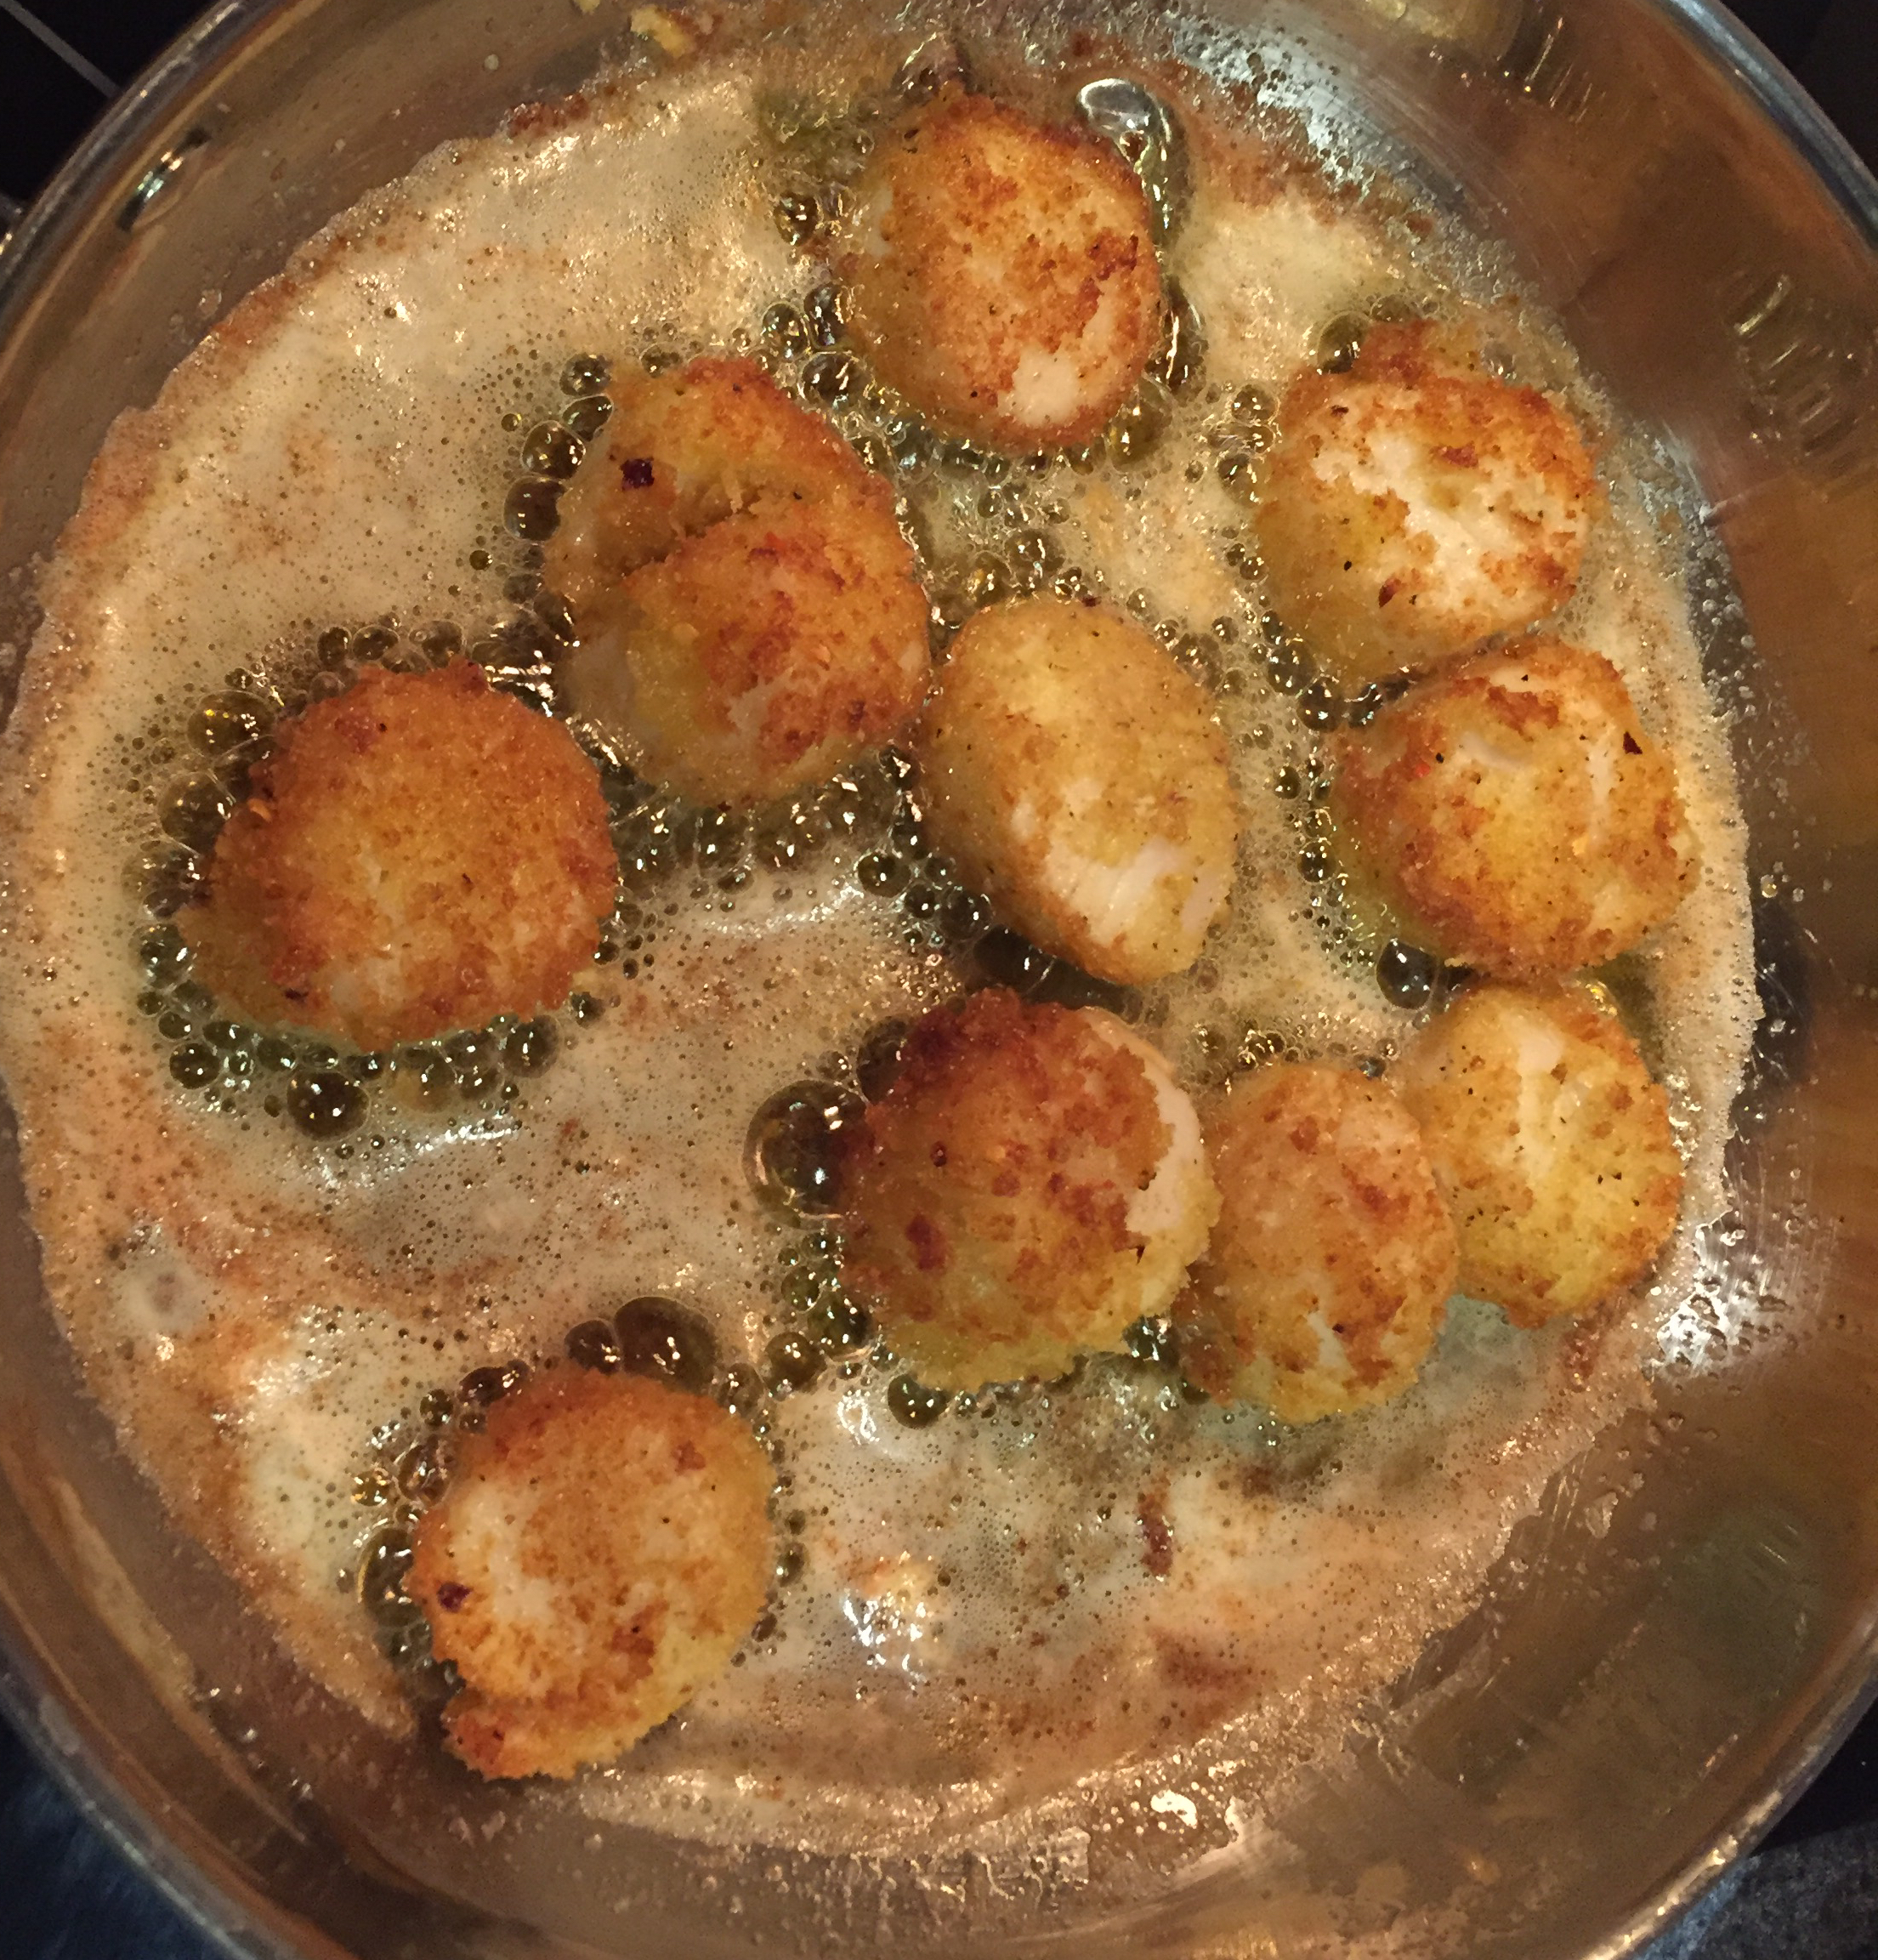 Breaded and Fried Scallops